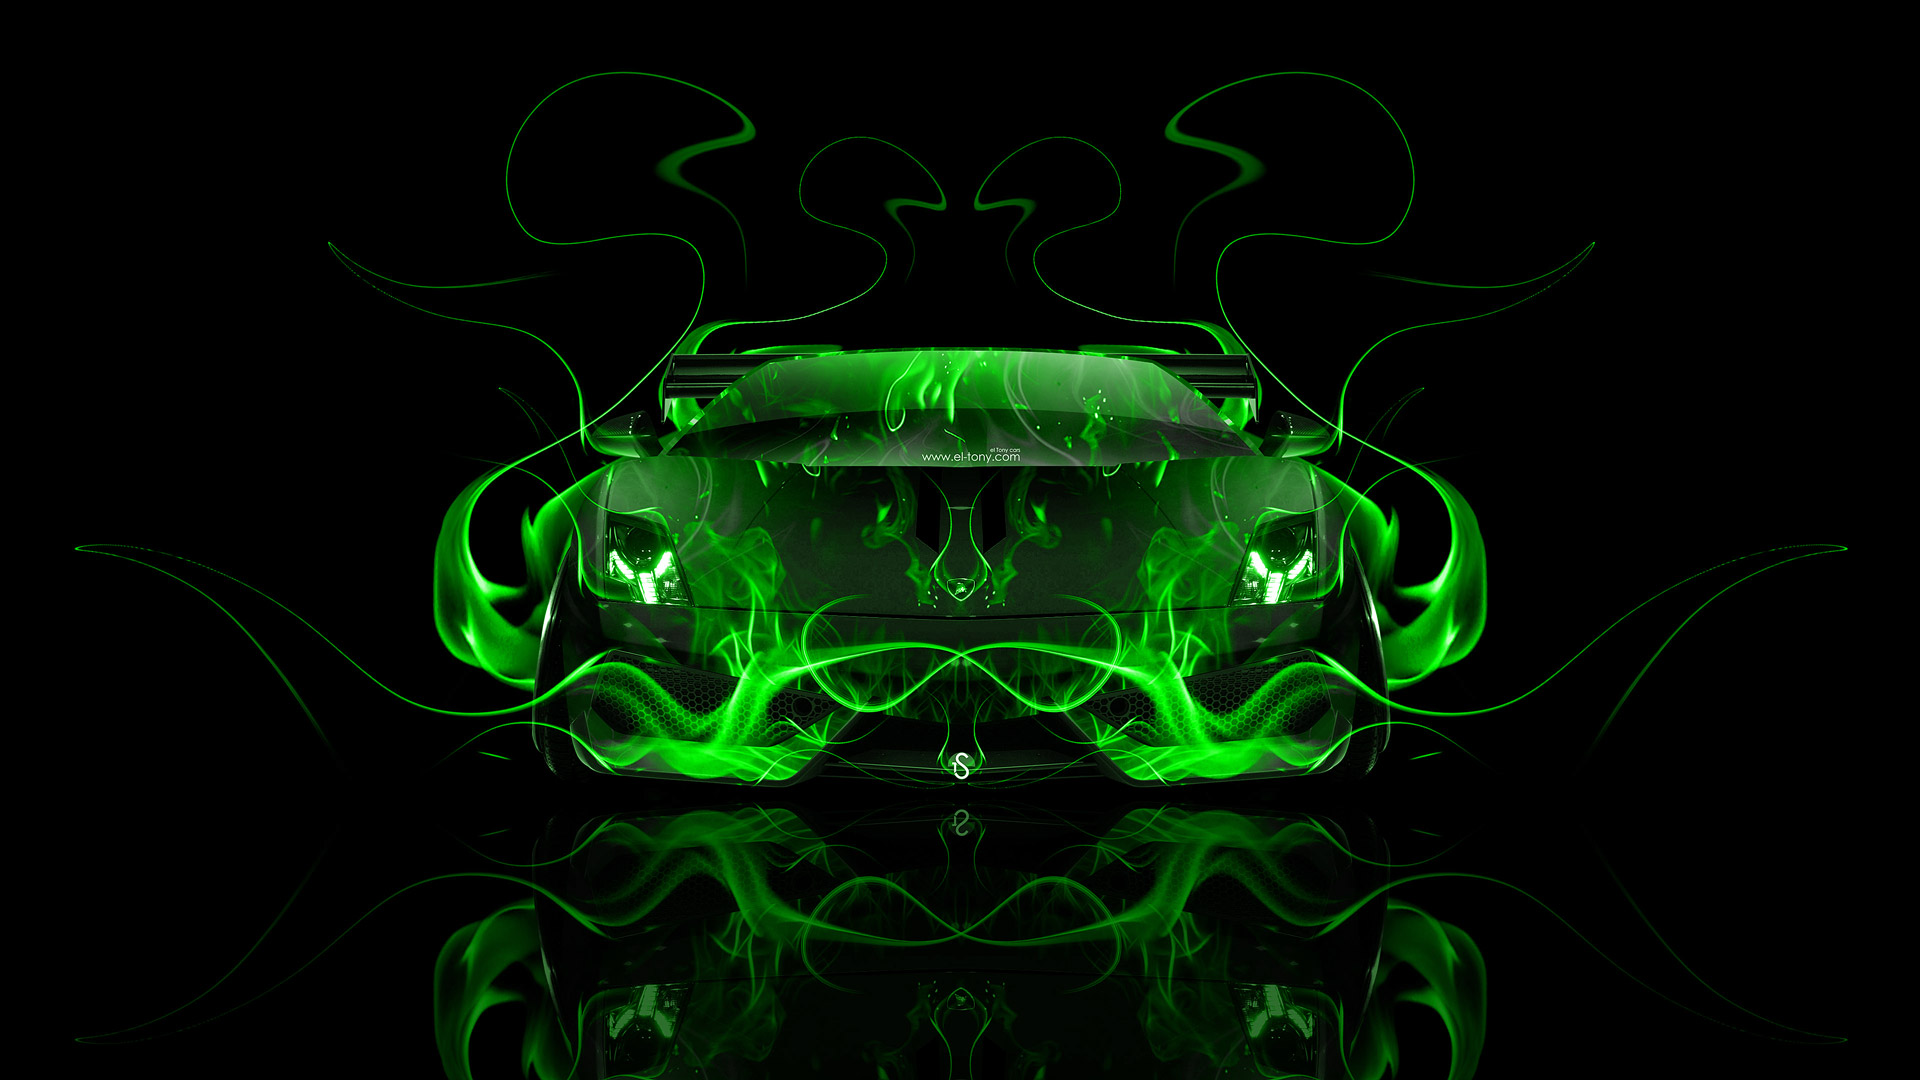 Lamborghini Gallardo Front Fire Abstract Car 2014 | El Tony